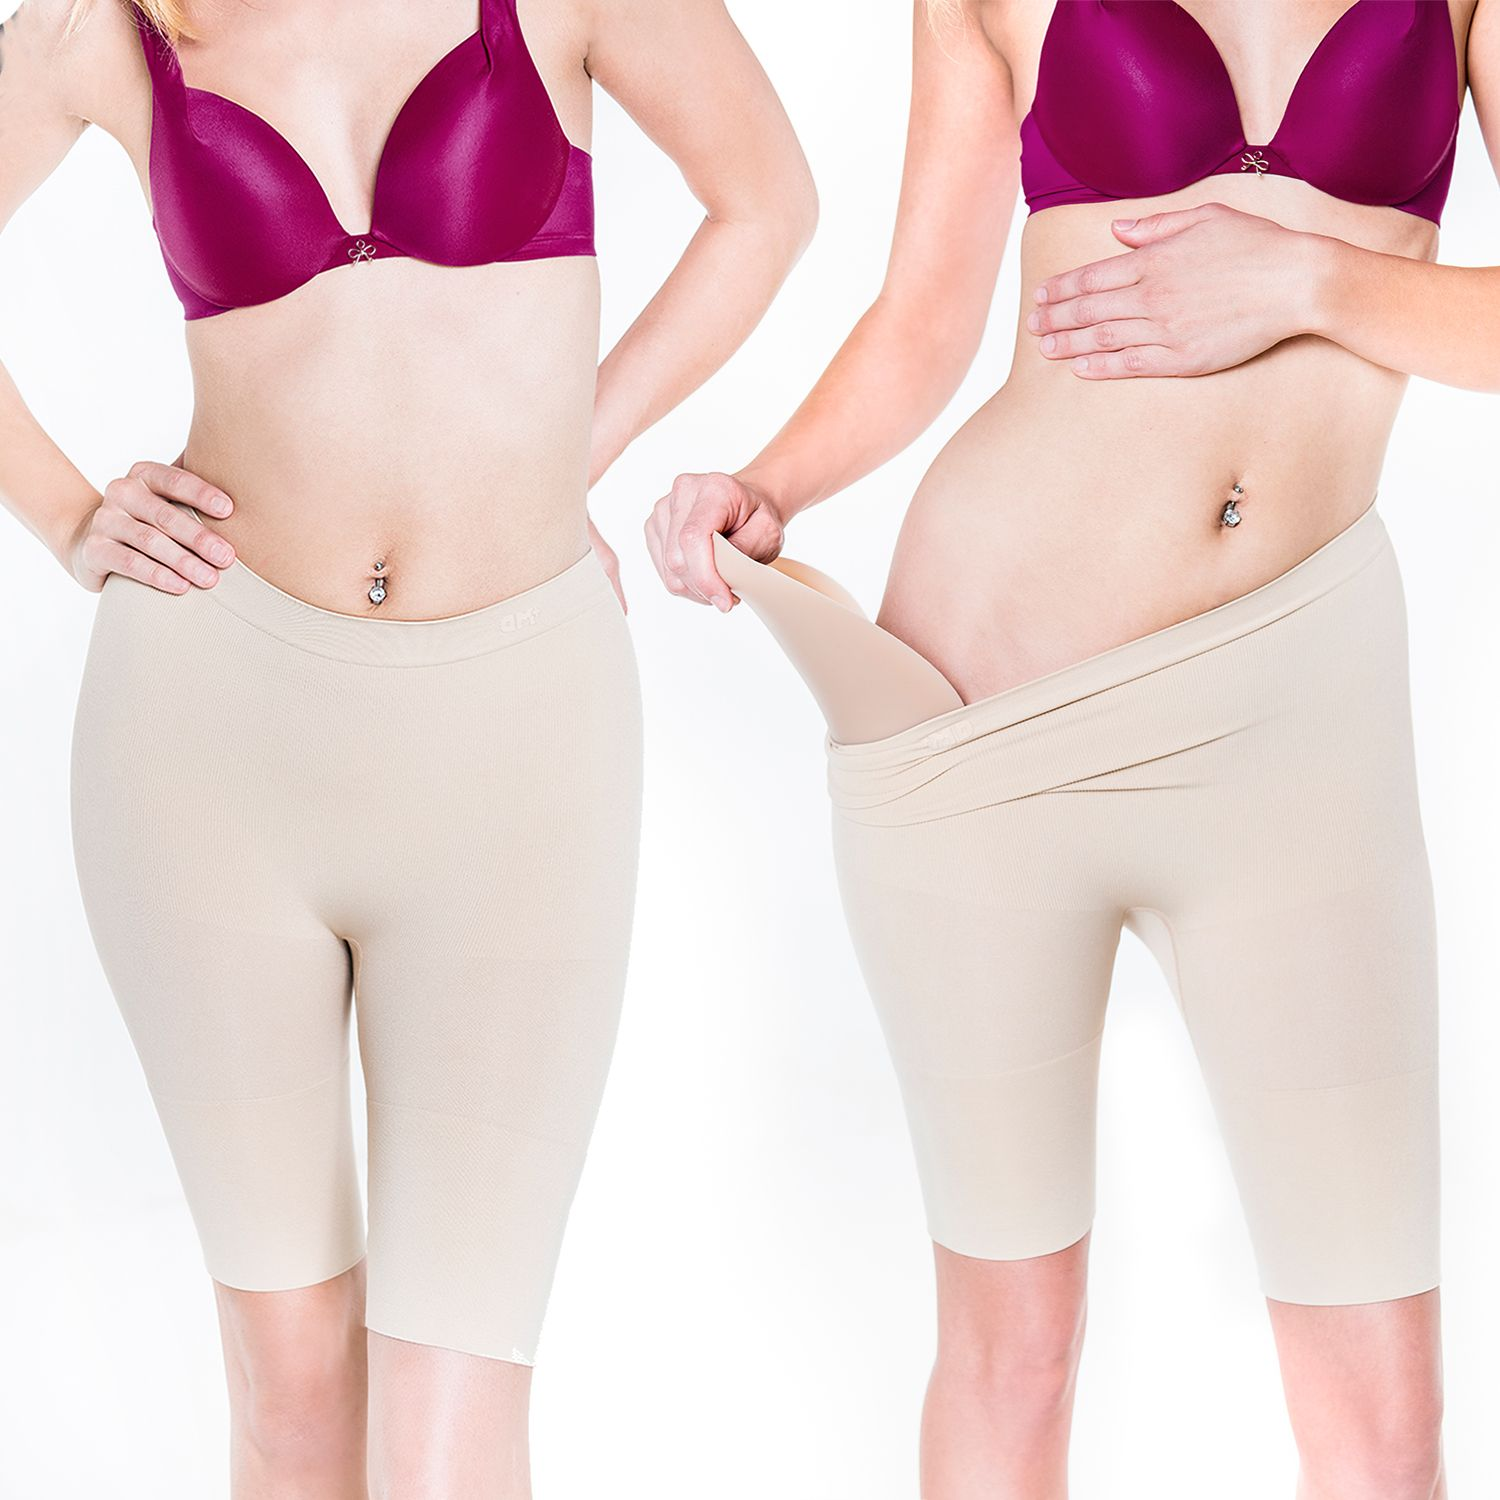 028c1419b32a6 Realistic silicone hip pads from Sculptress. Wear them beneath Spanx ...